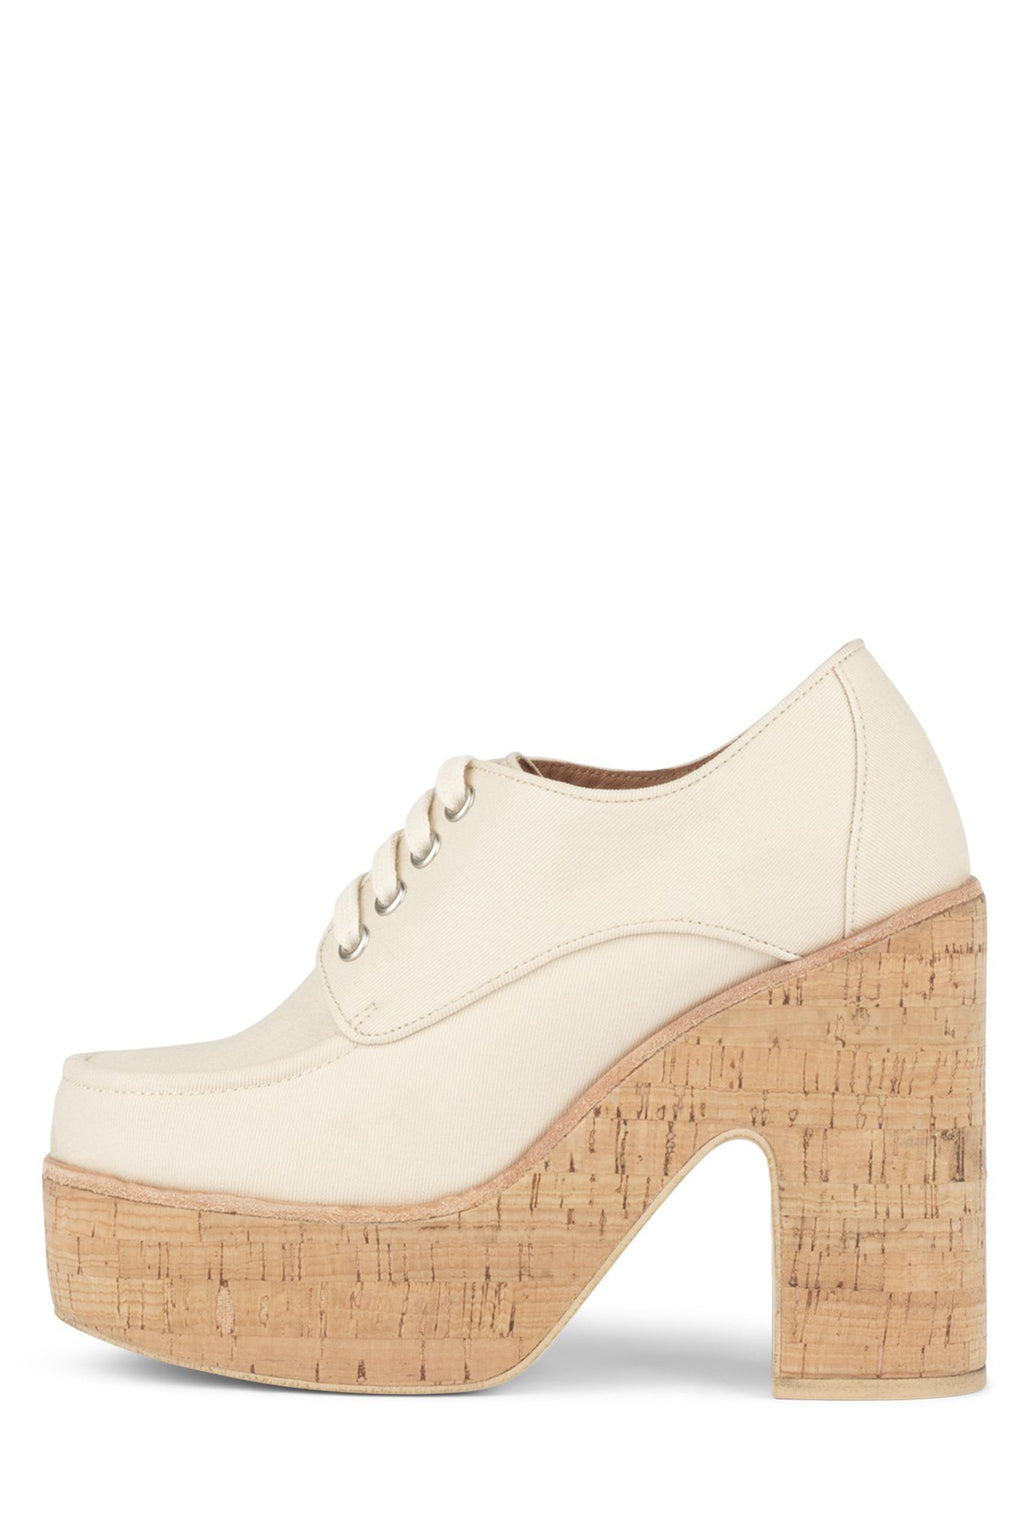 SHAGGIN Oxford HS Beige Canvas 6